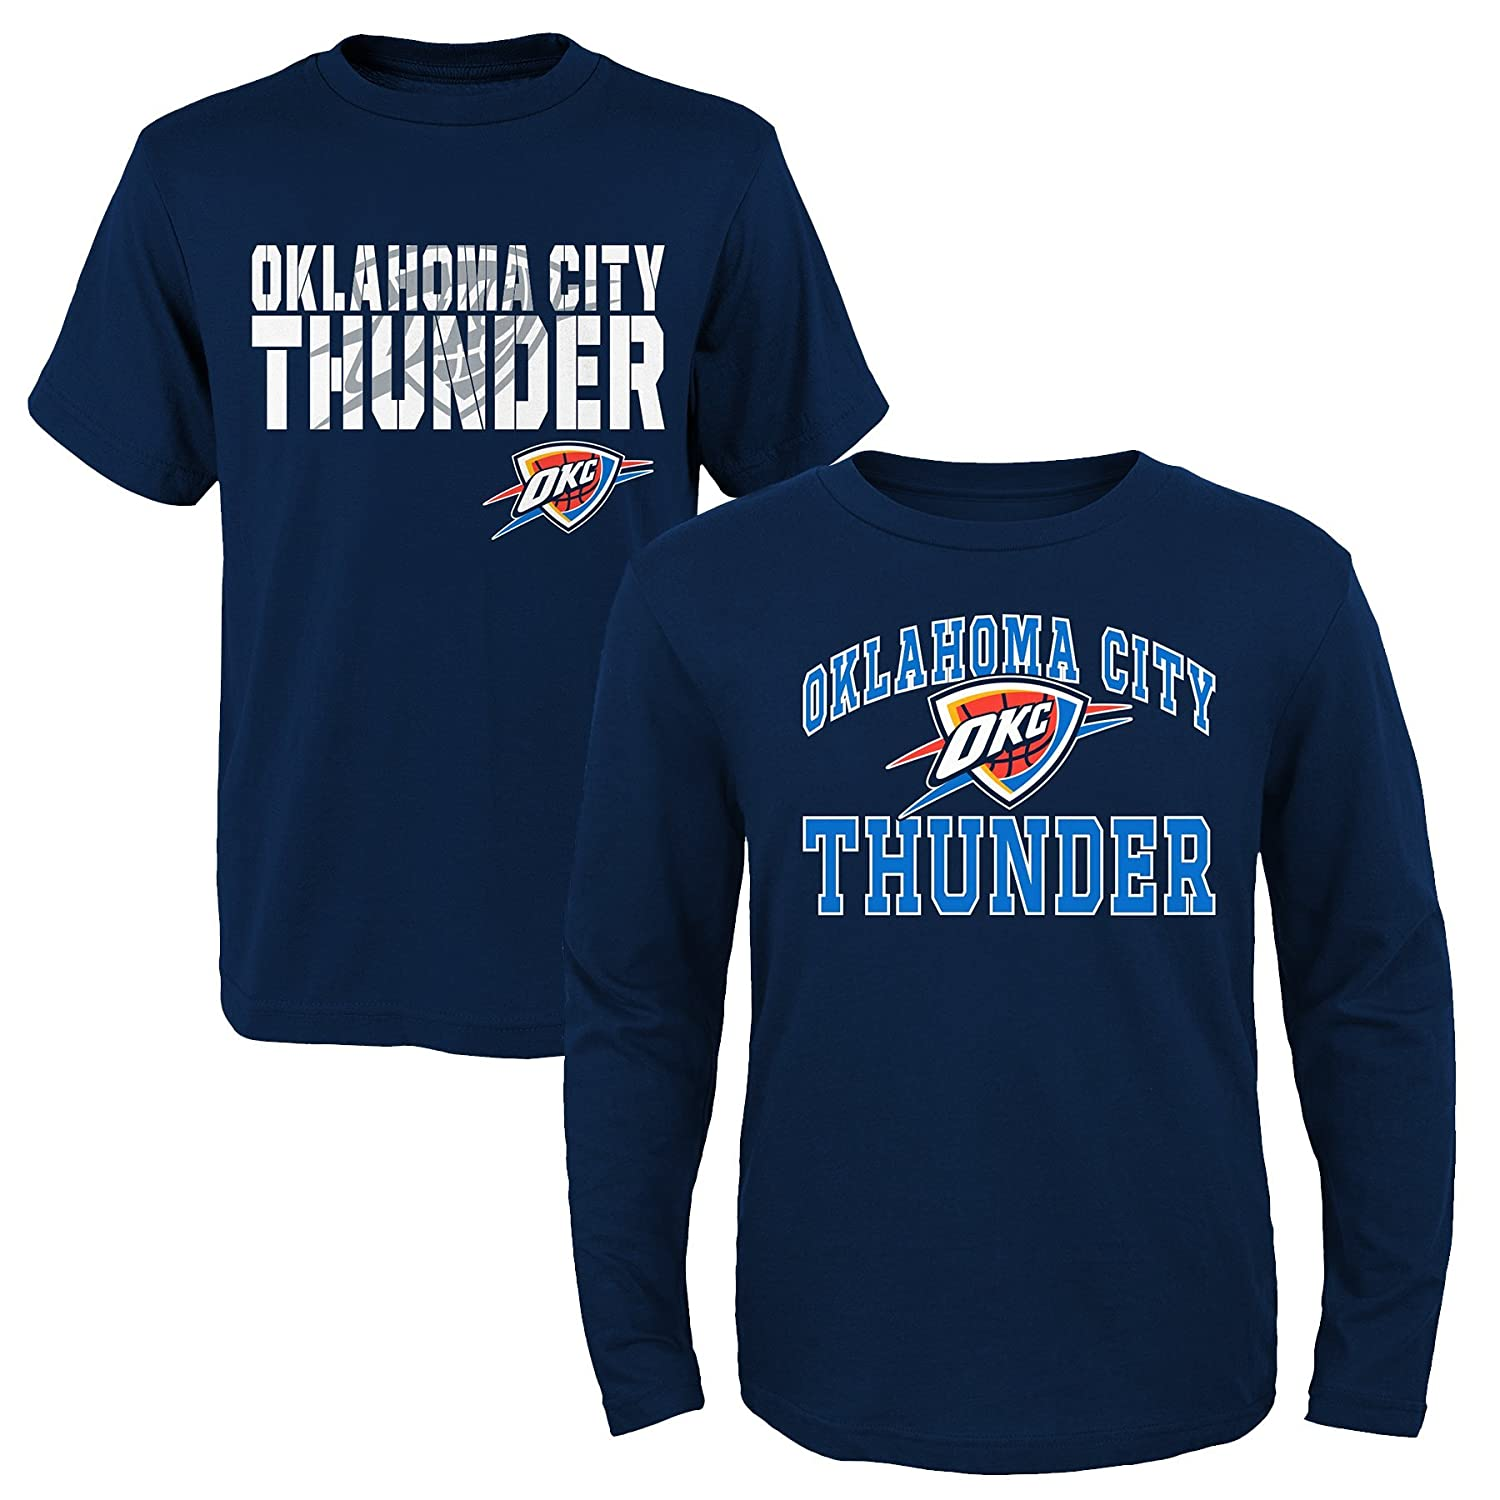 最安値で  NBA Youth Boys 8 Oklahoma – 8 Thunder 20 Thunder 2piece Long &半袖Tシャツセット Large Oklahoma City Thunder B01LZUJ94M, 名寄市:ef9d952f --- a0267596.xsph.ru